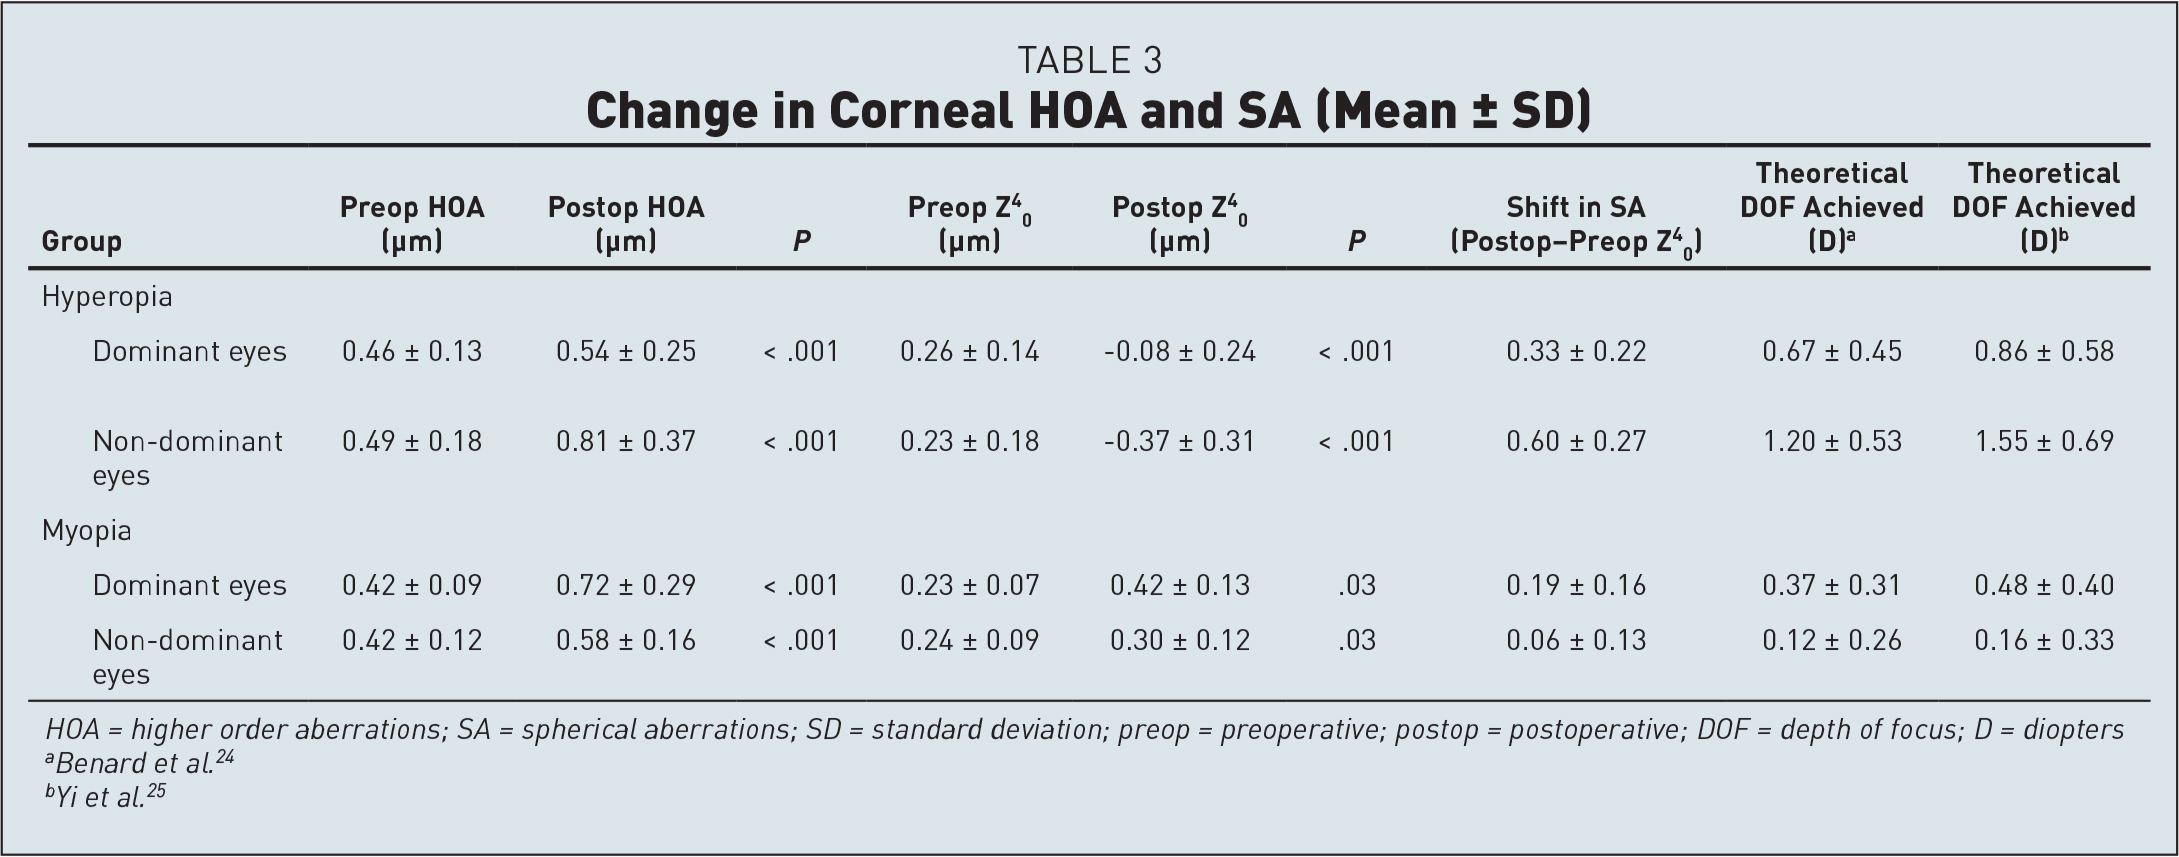 Change in Corneal HOA and SA (Mean ± SD)